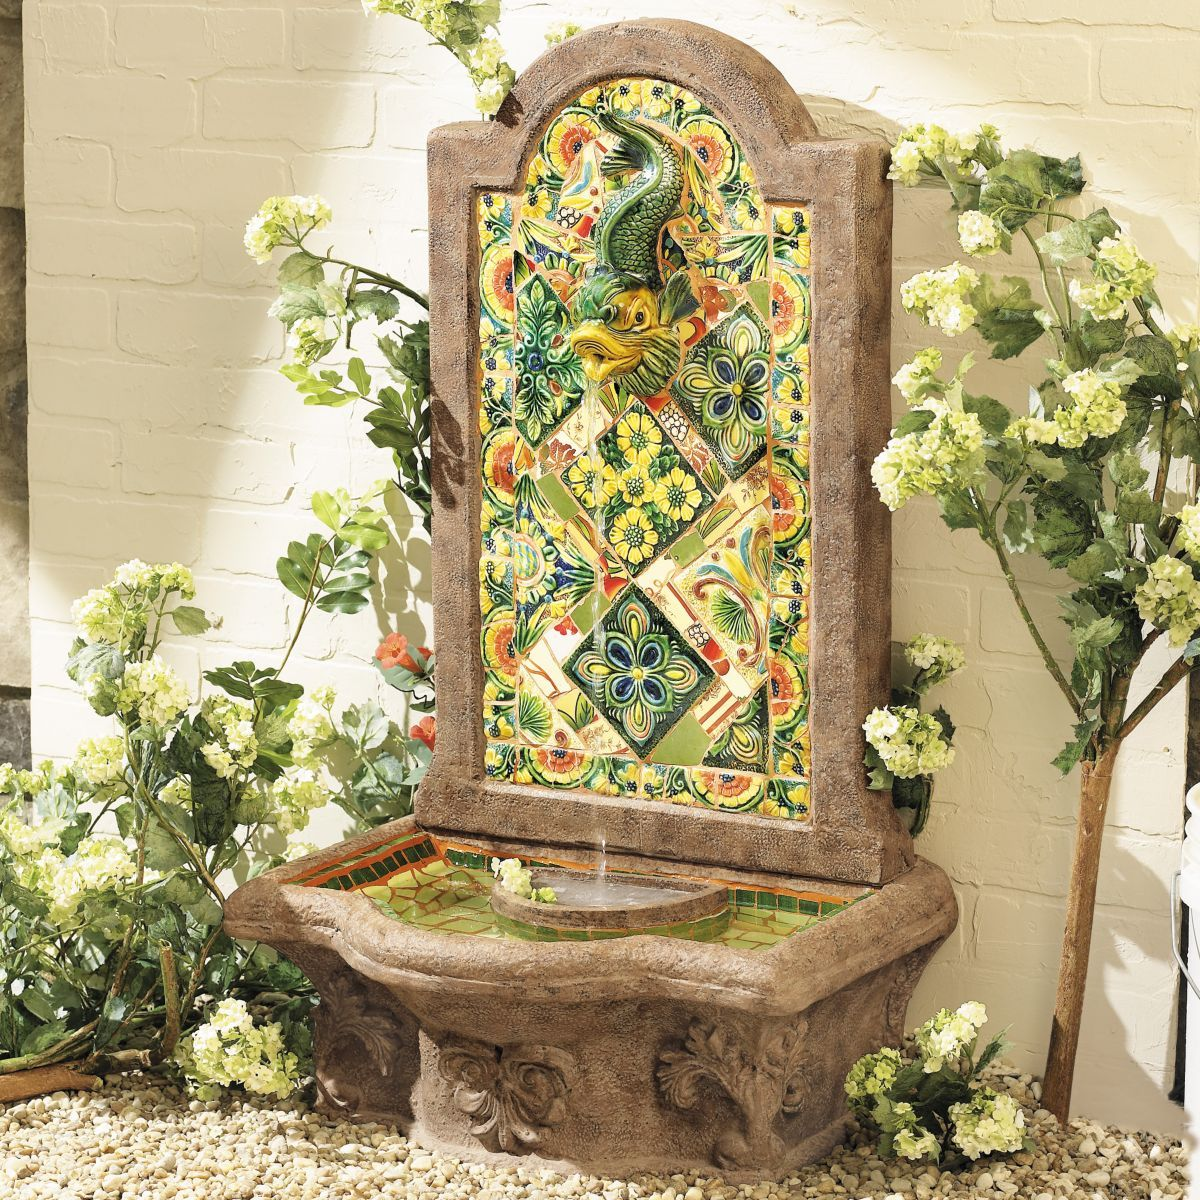 Chianna Fountain | Tampa home | Pinterest | Outdoor cushions ...